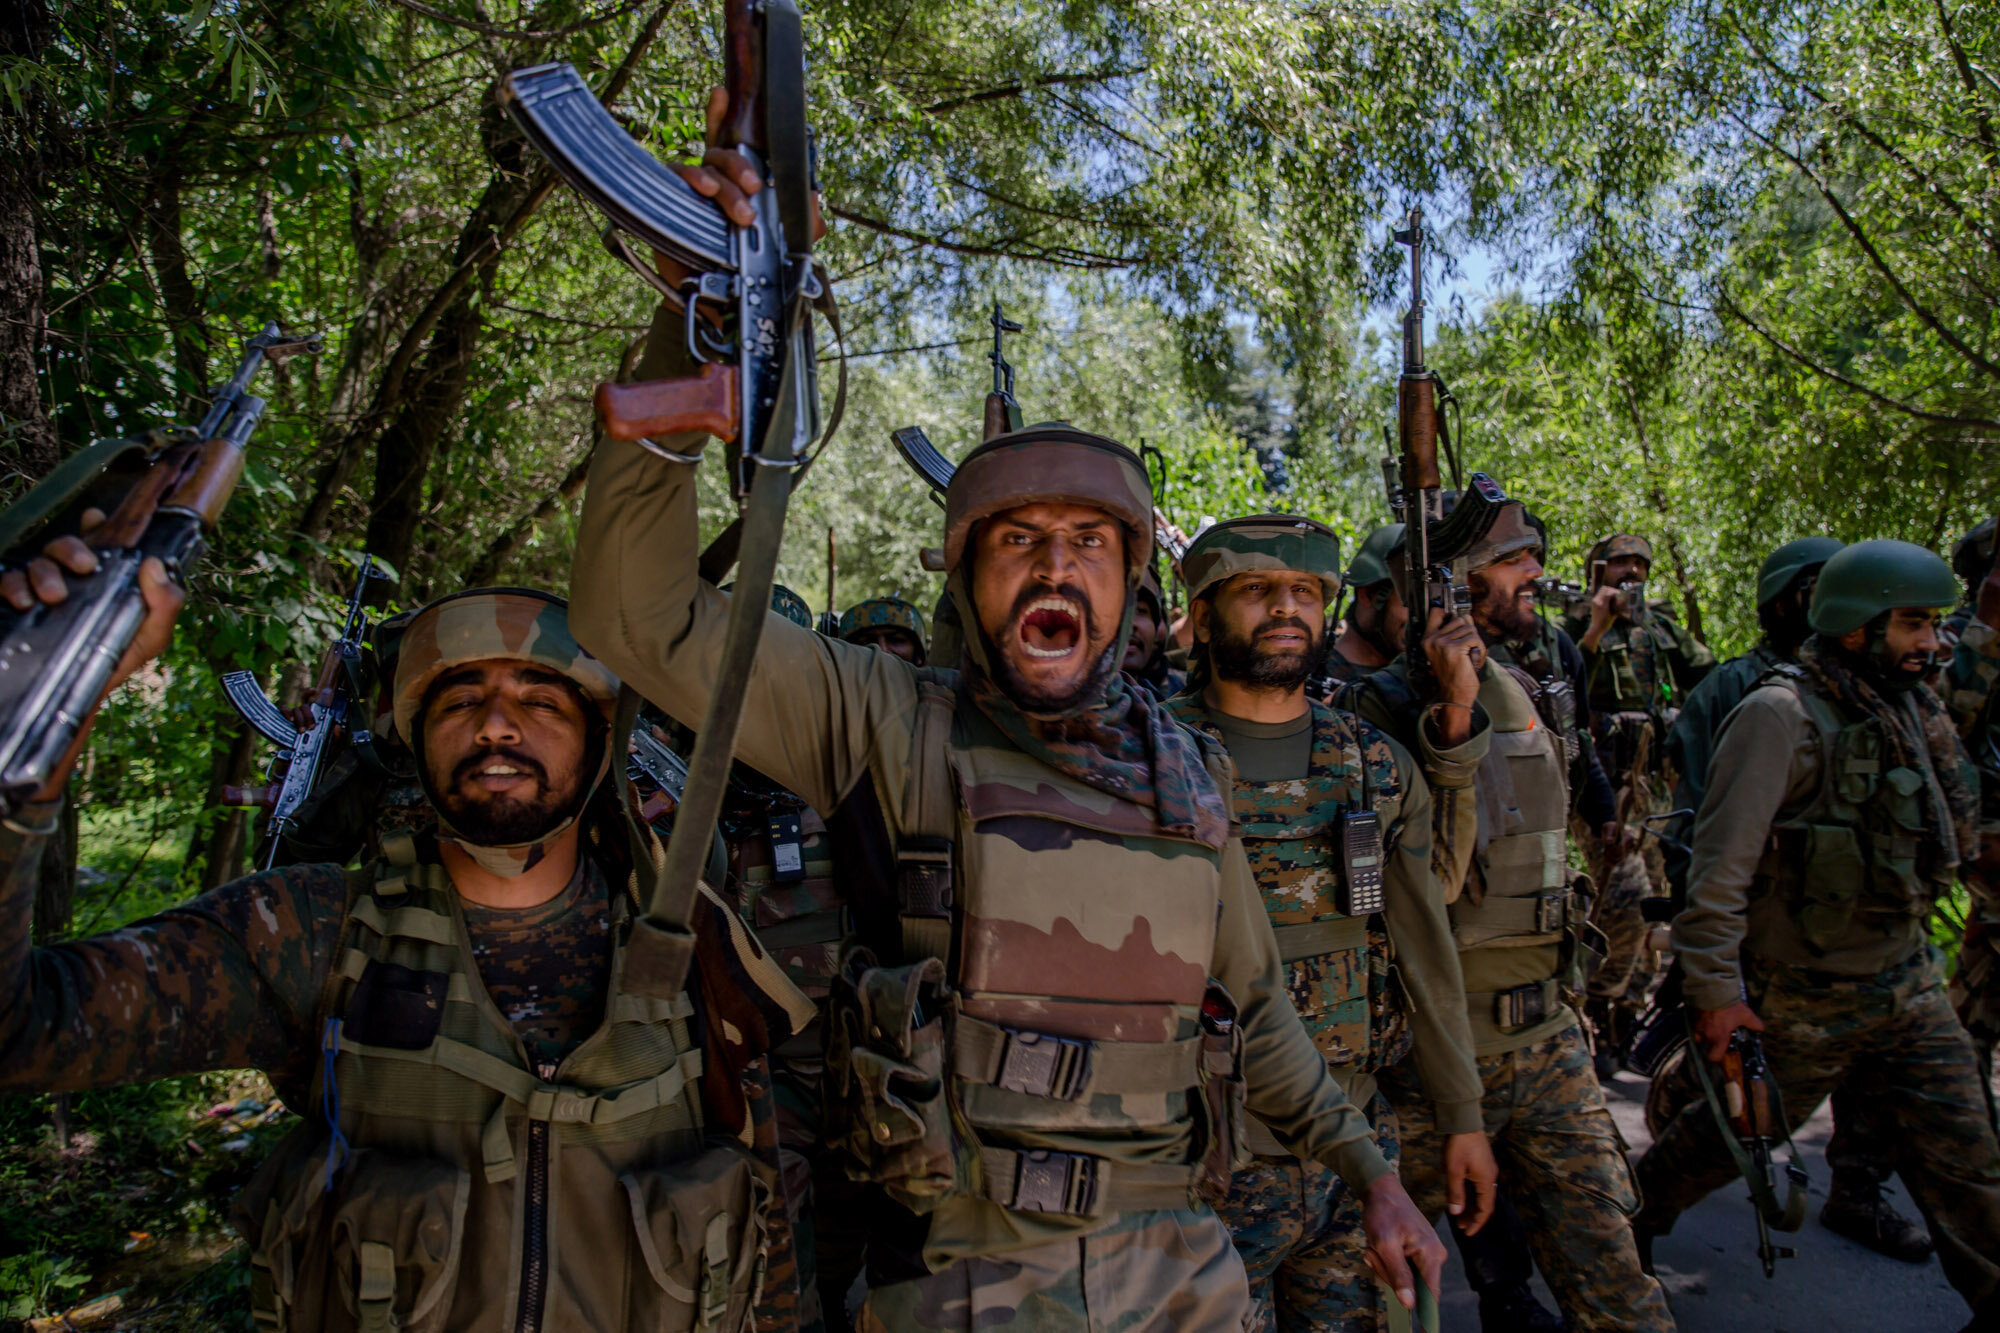 Indian army soldiers shout pro Indian and anti Pakistan slogans as they leave the site of gun-battle in Dialgham about 60 Kilometres South Srinagar, Indian controlled Kashmir, July 1, 2017. (AP Photo/Dar Yasin)